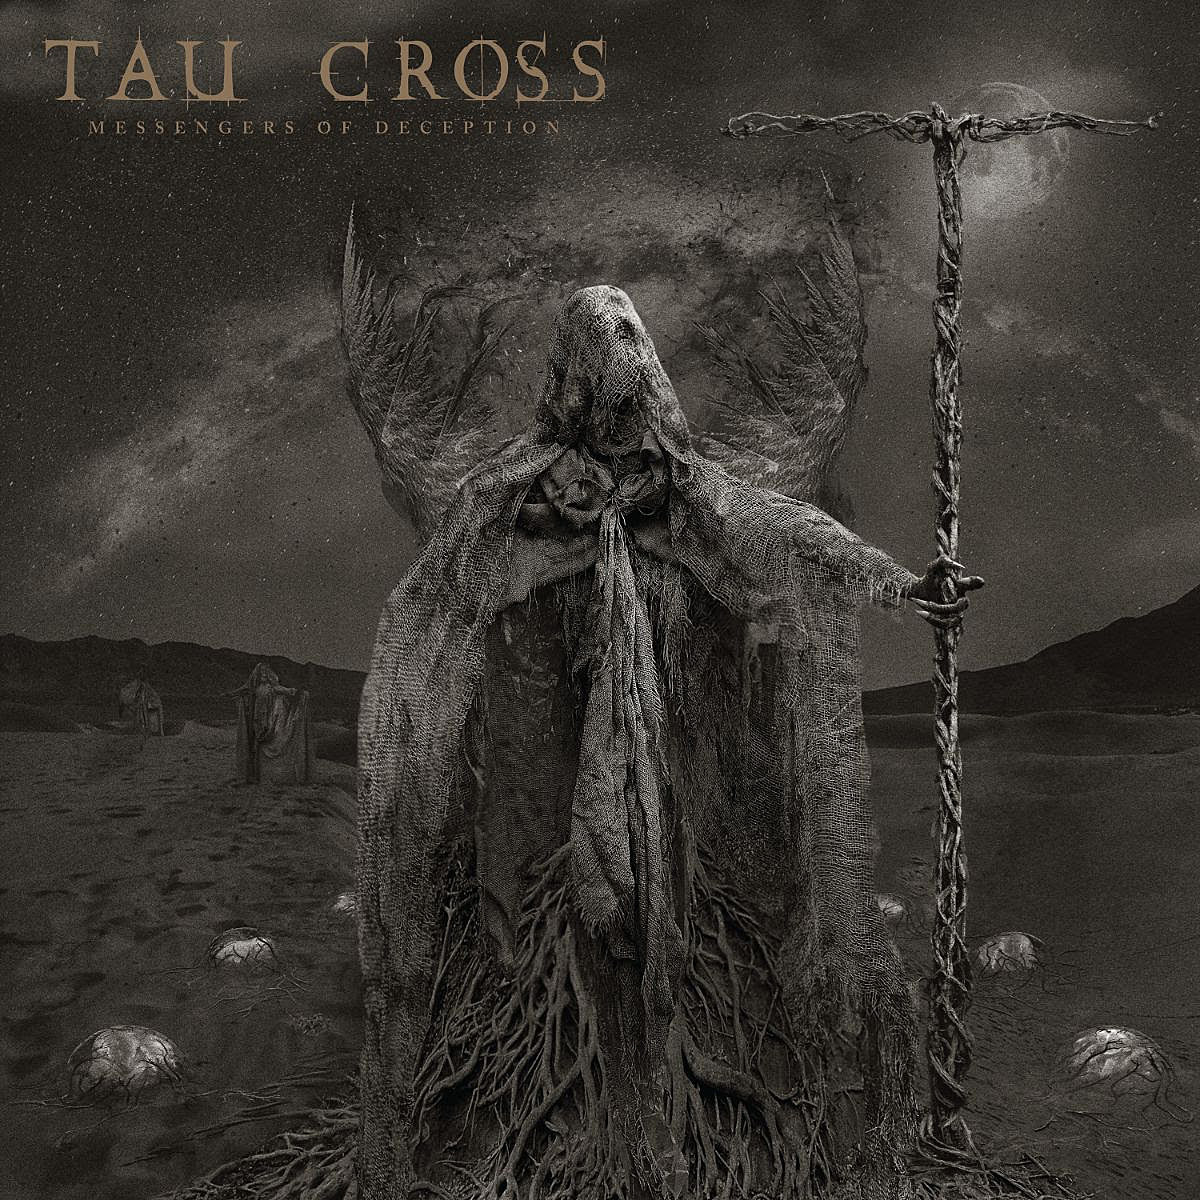 Tau Cross Messengers of Deception